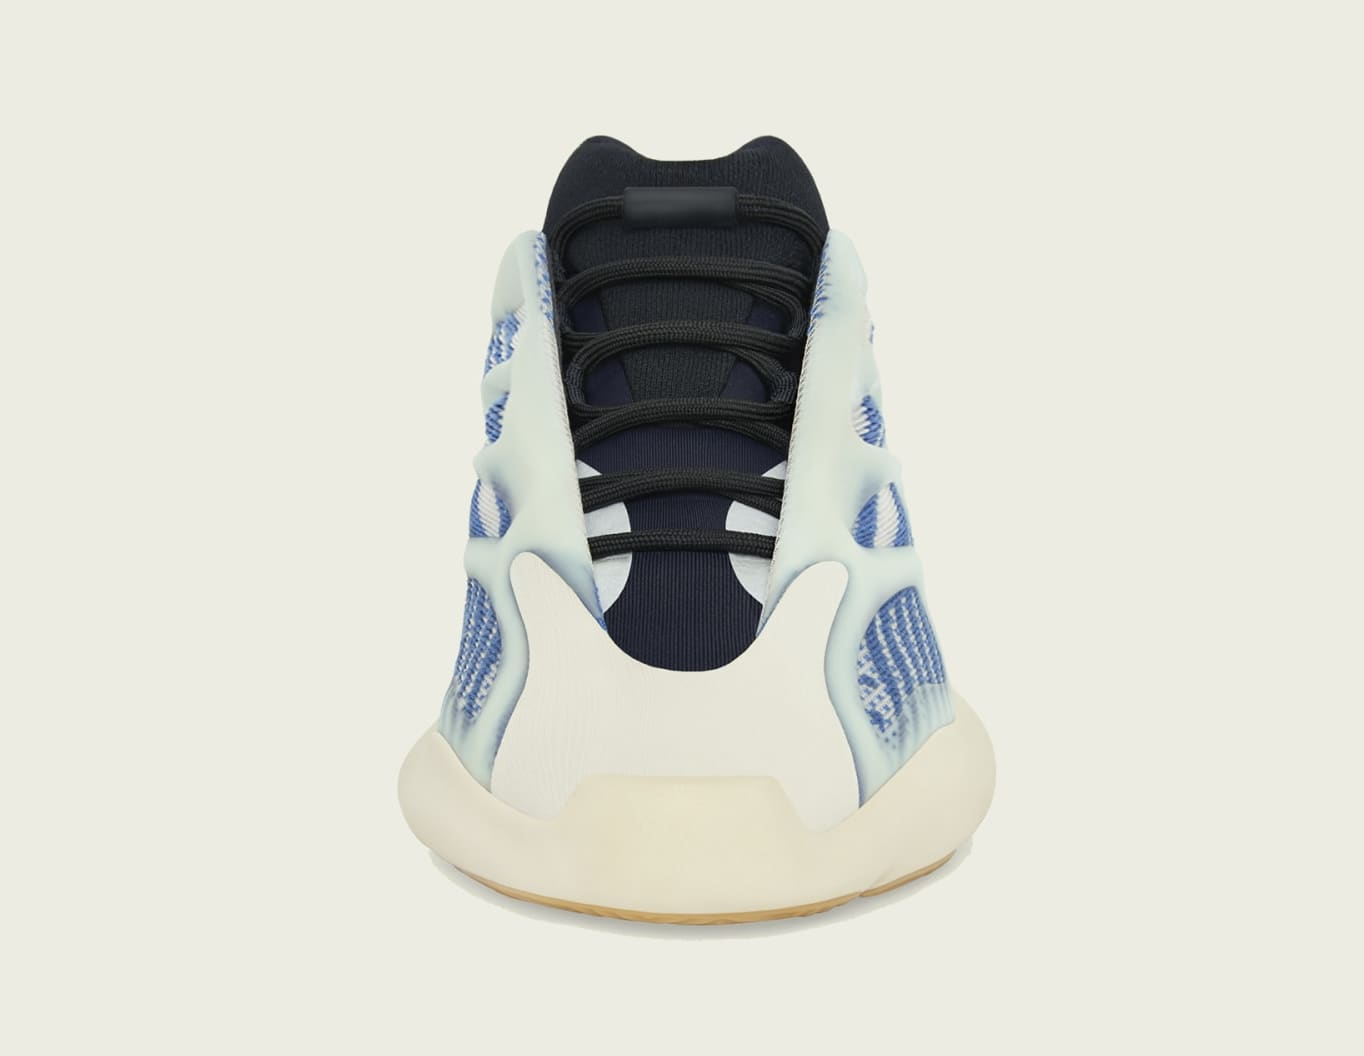 Adidas Yeezy 700 V3 'Kyanite' GY0260 Front